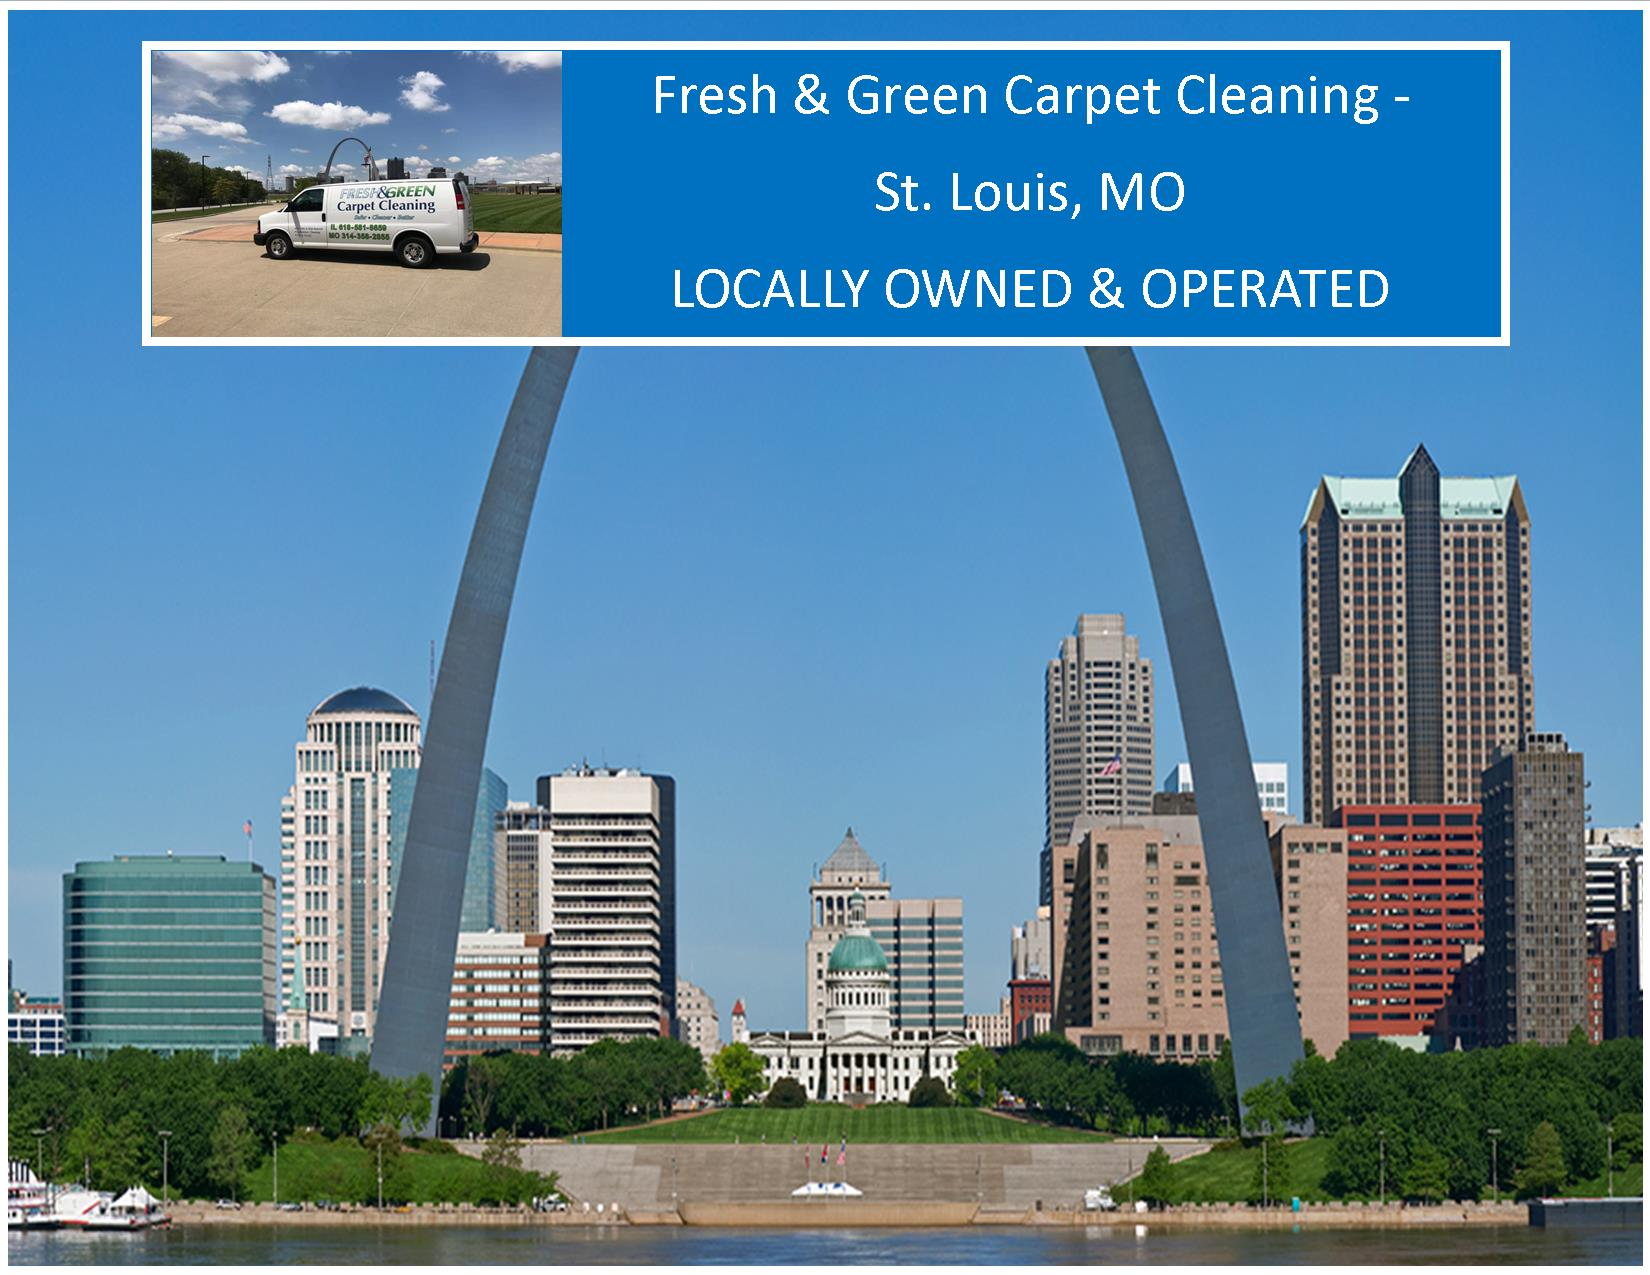 Carpet Cleaning St. Louis MO